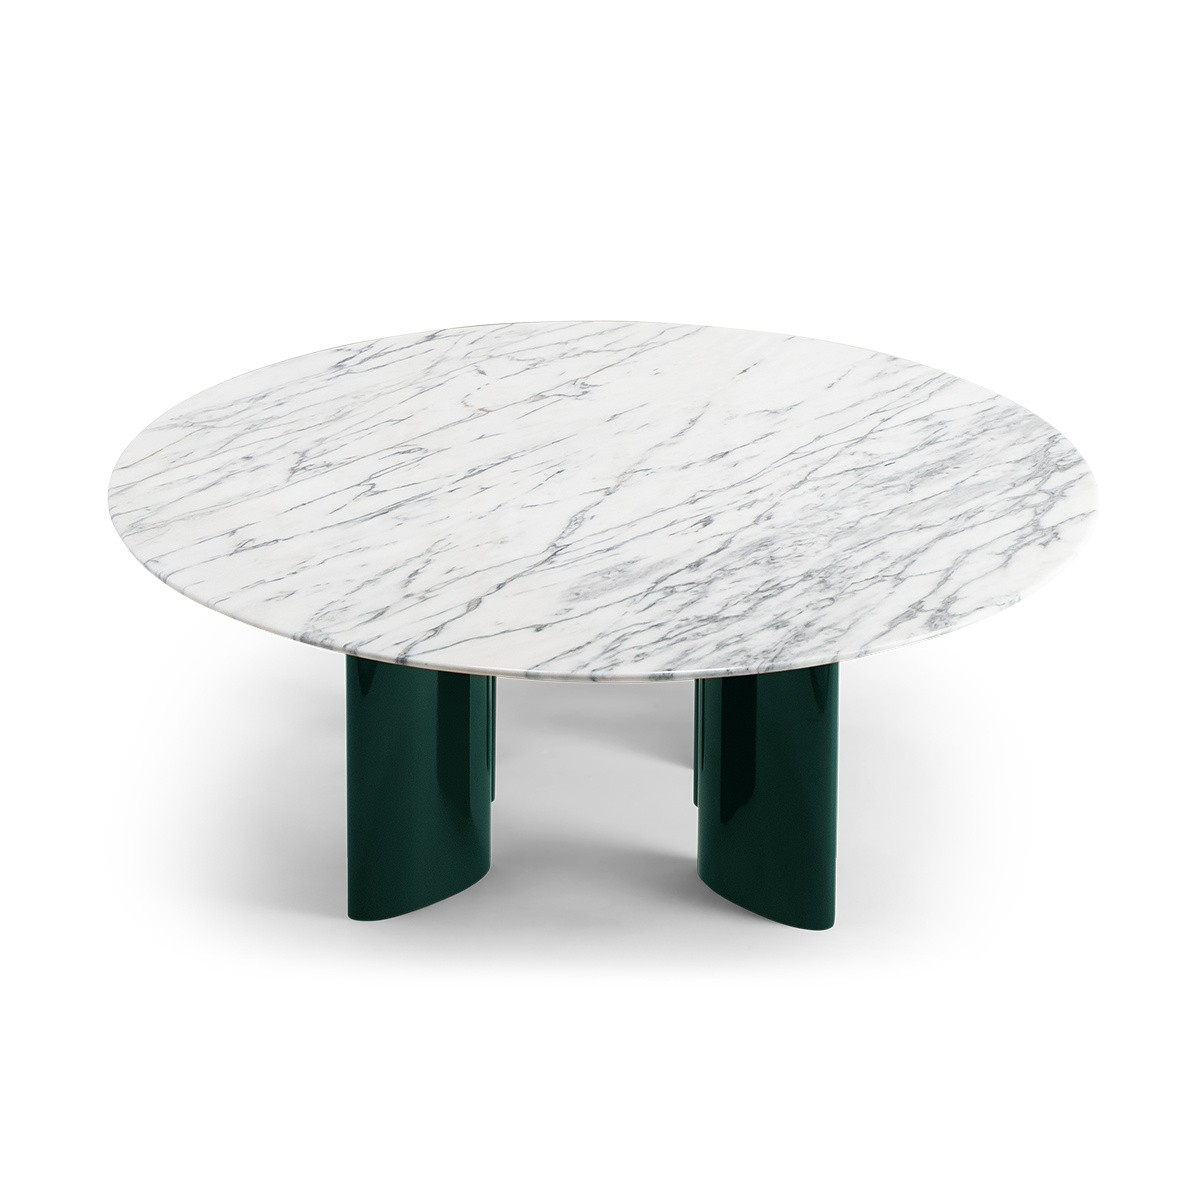 Carlotta Coffee Table, White Marble Top and Green Legs